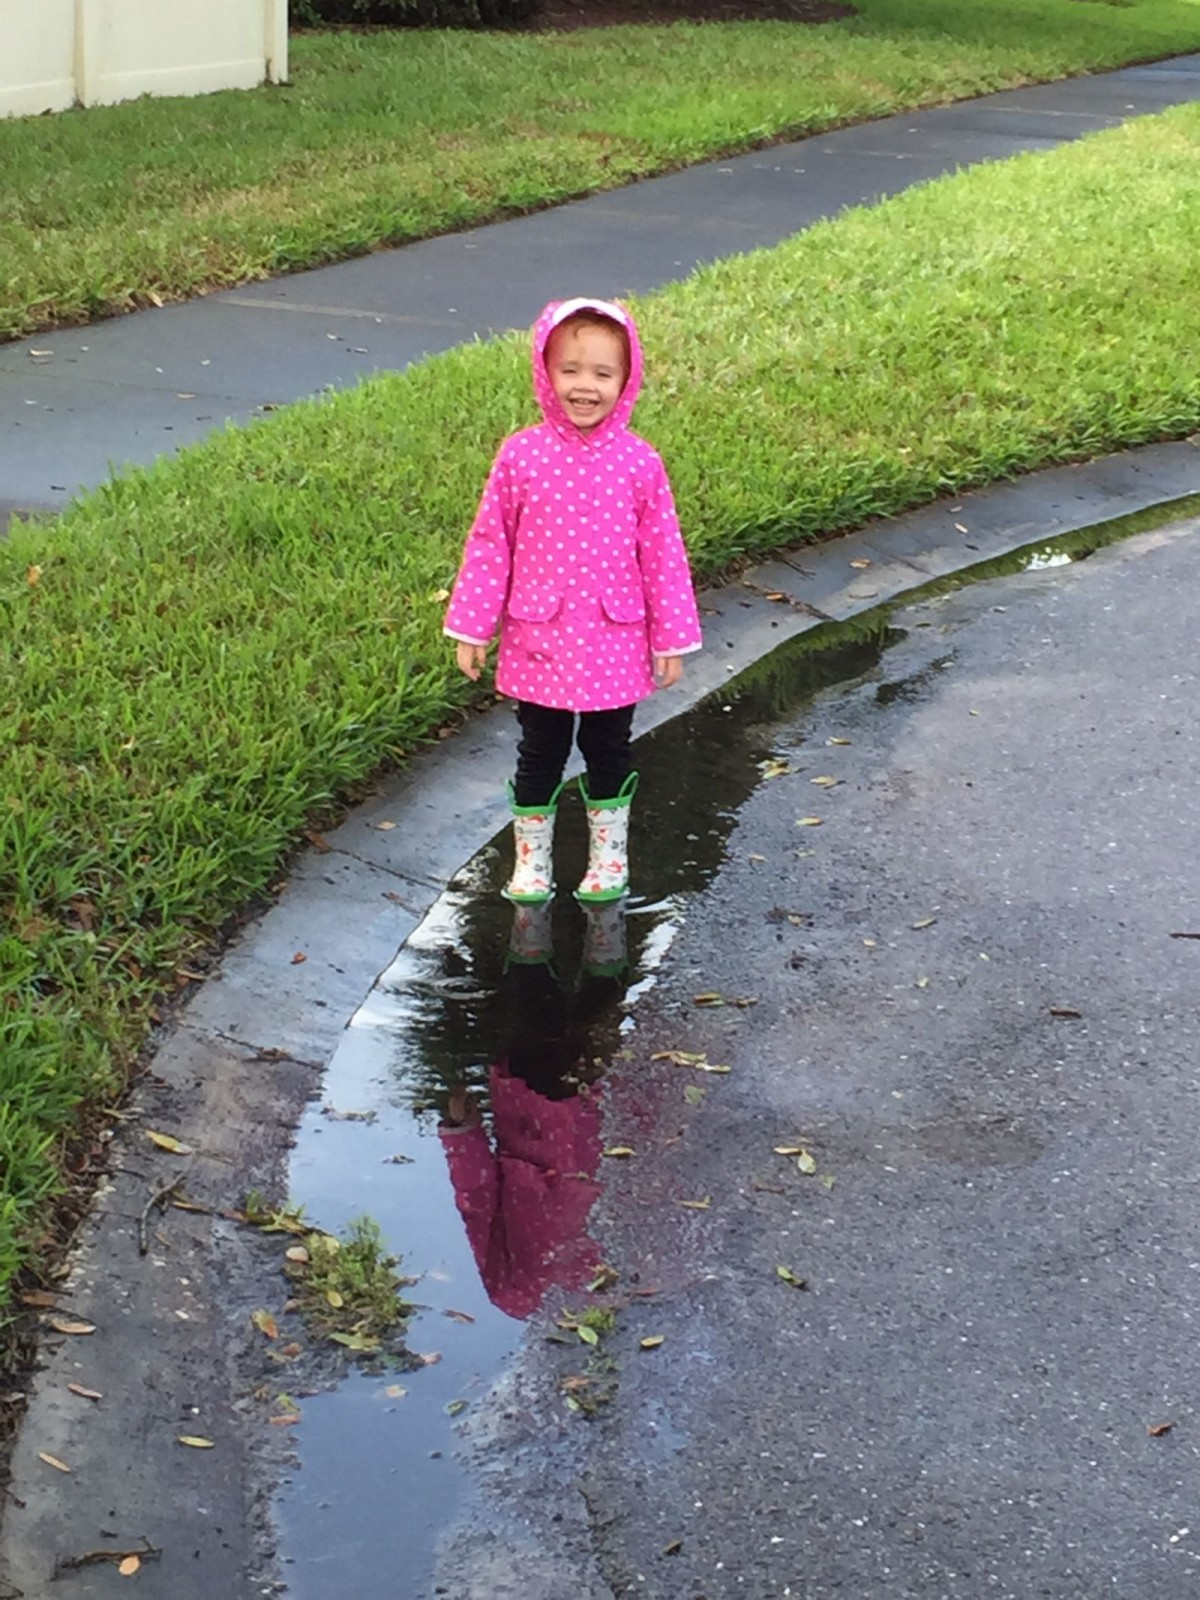 Splashing in the puddles [VIDEO]